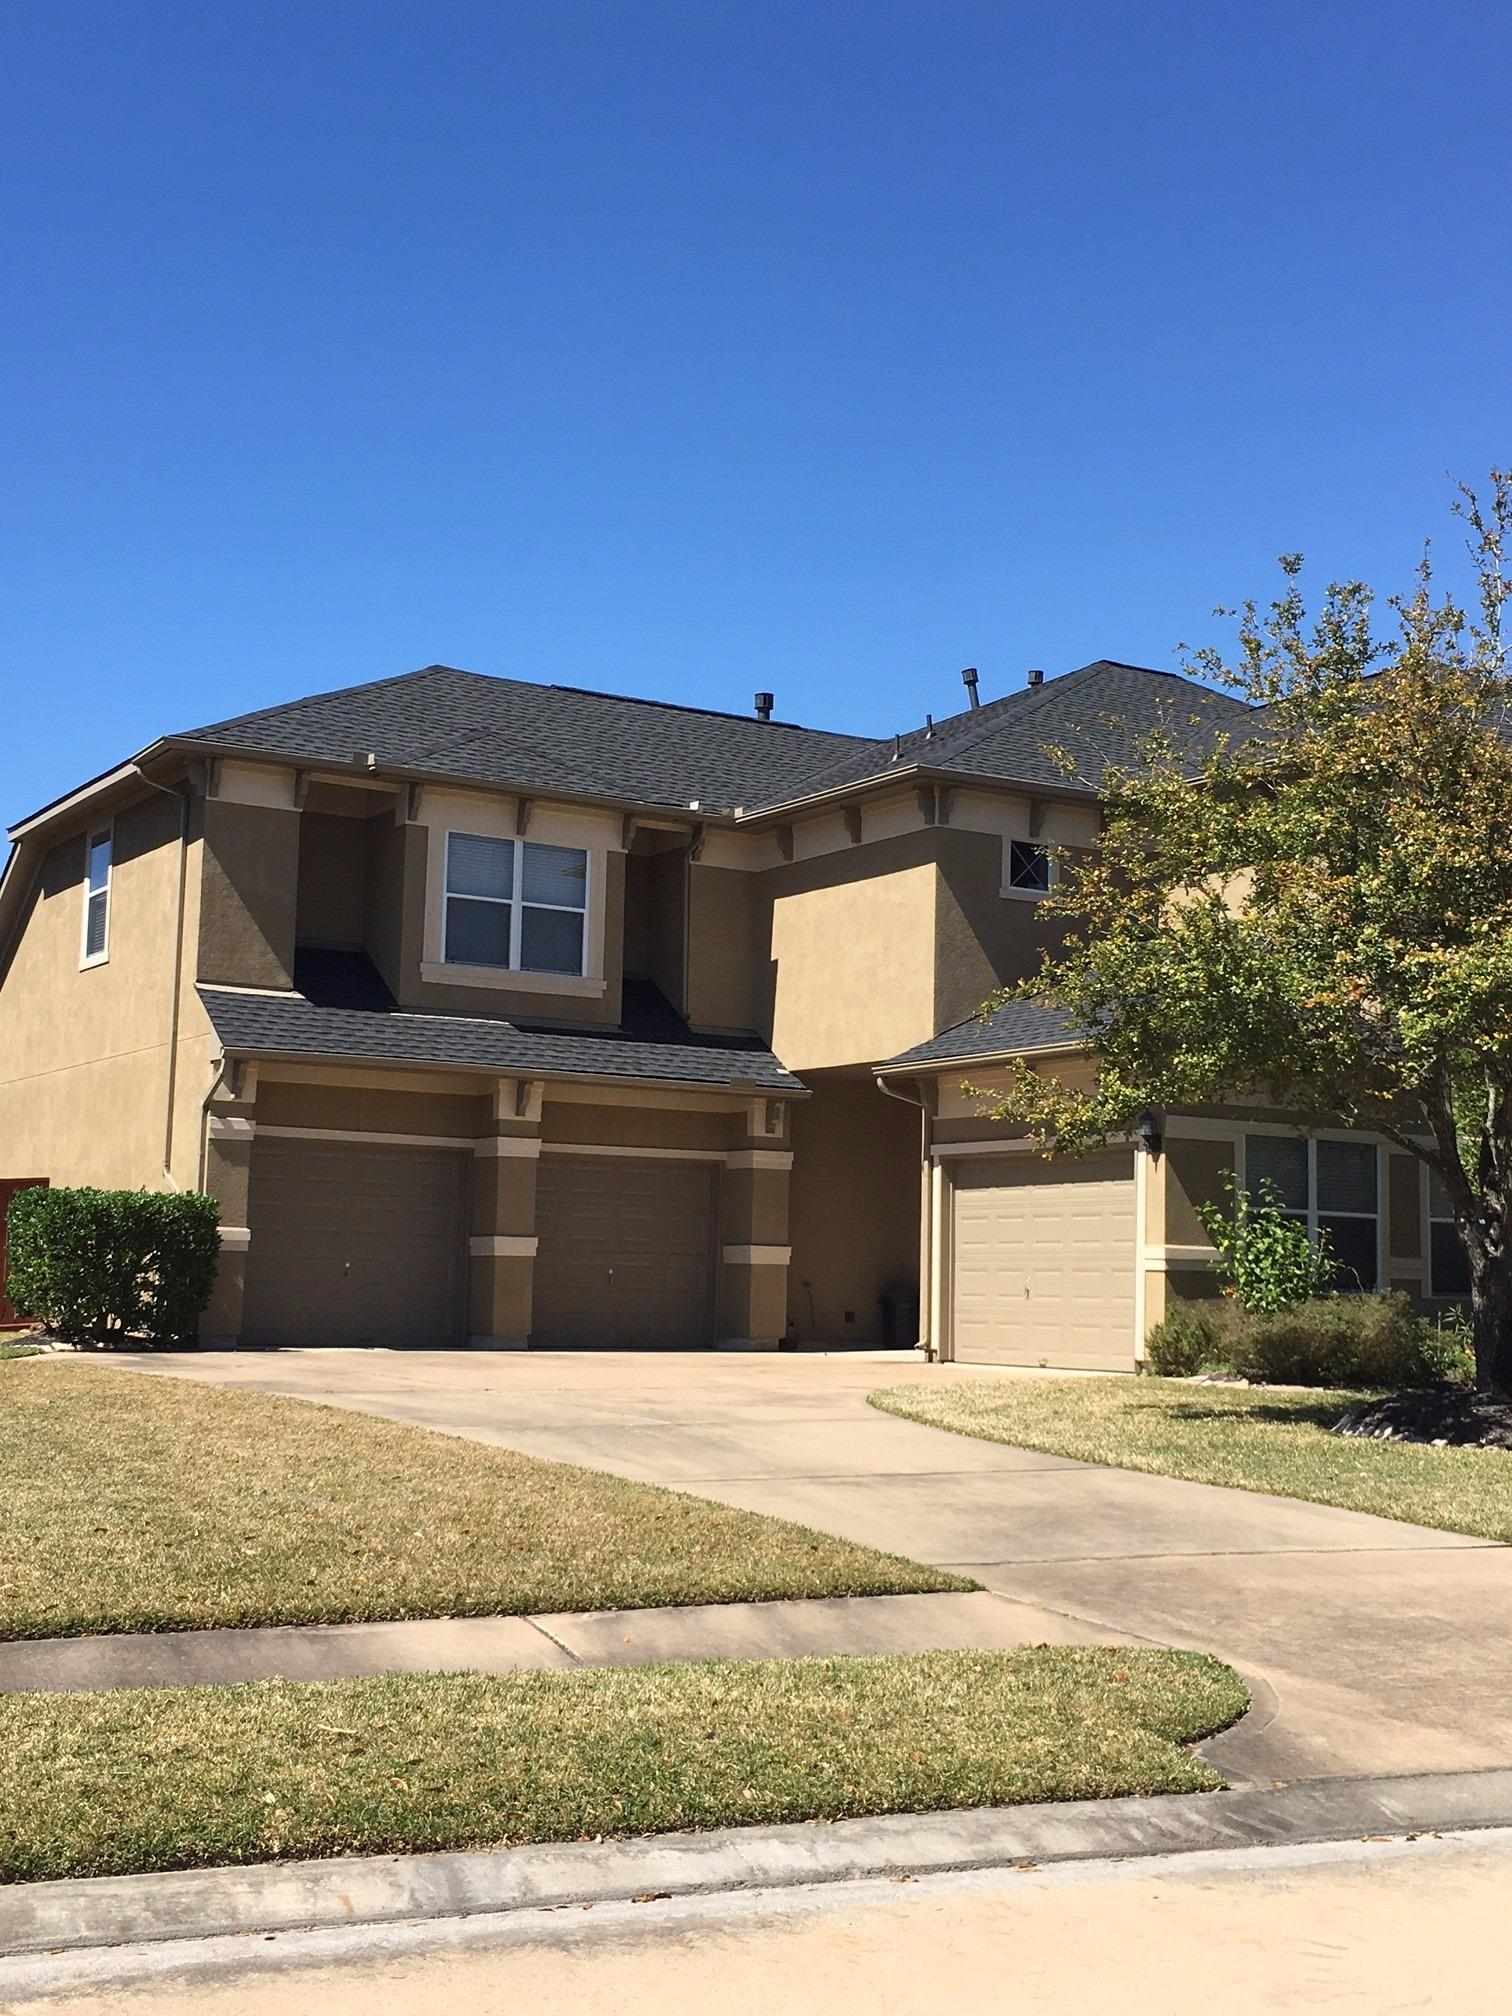 Houston Roofing & Construction image 10